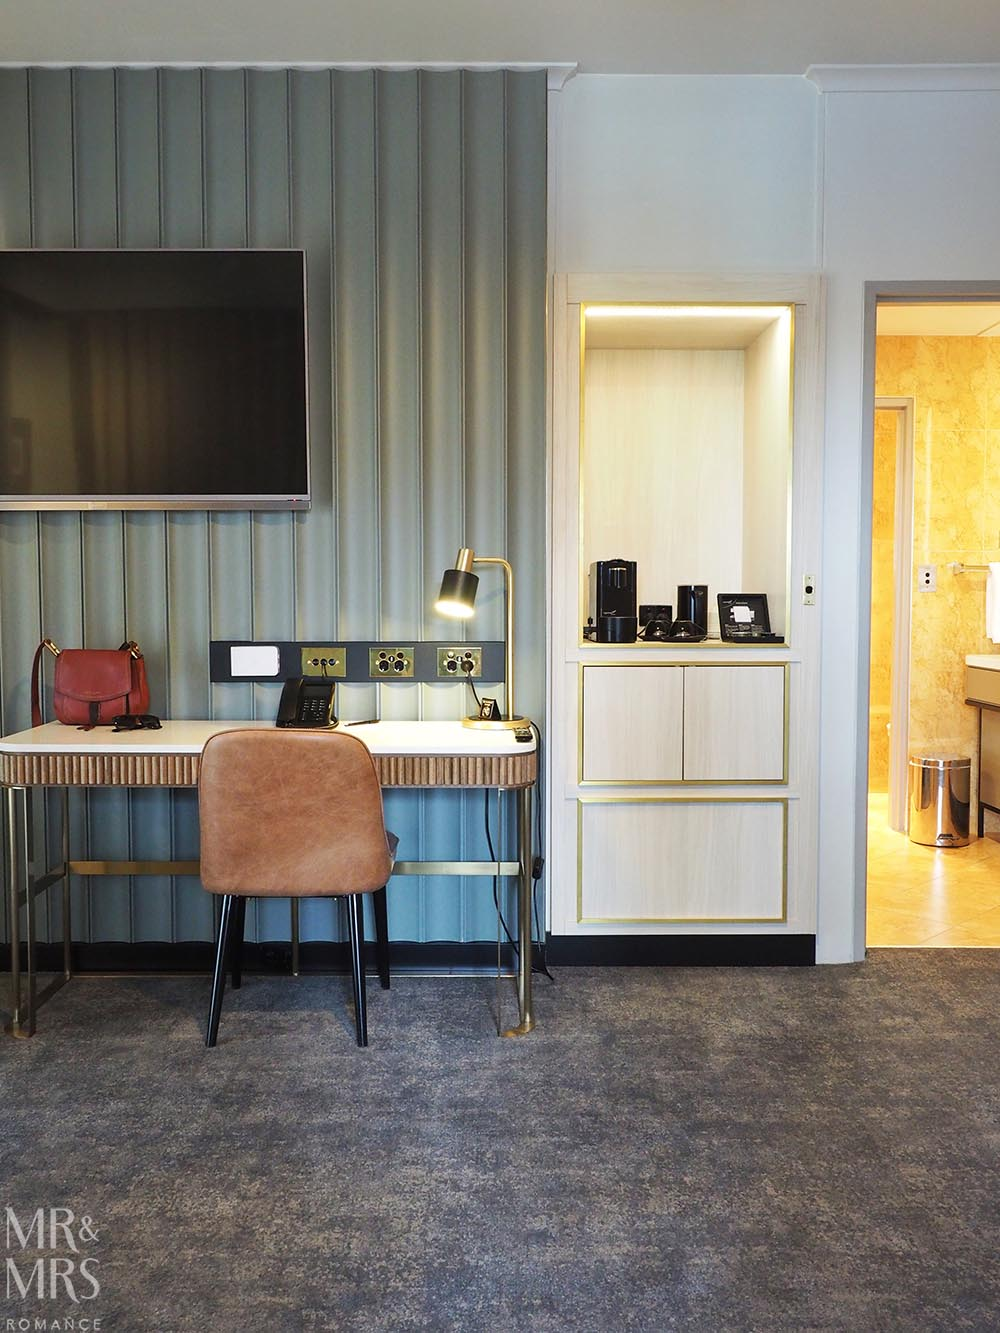 Where to stay in Tamworth NSW - Powerhouse Hotel Tamworth by Rydges - desk and minibar